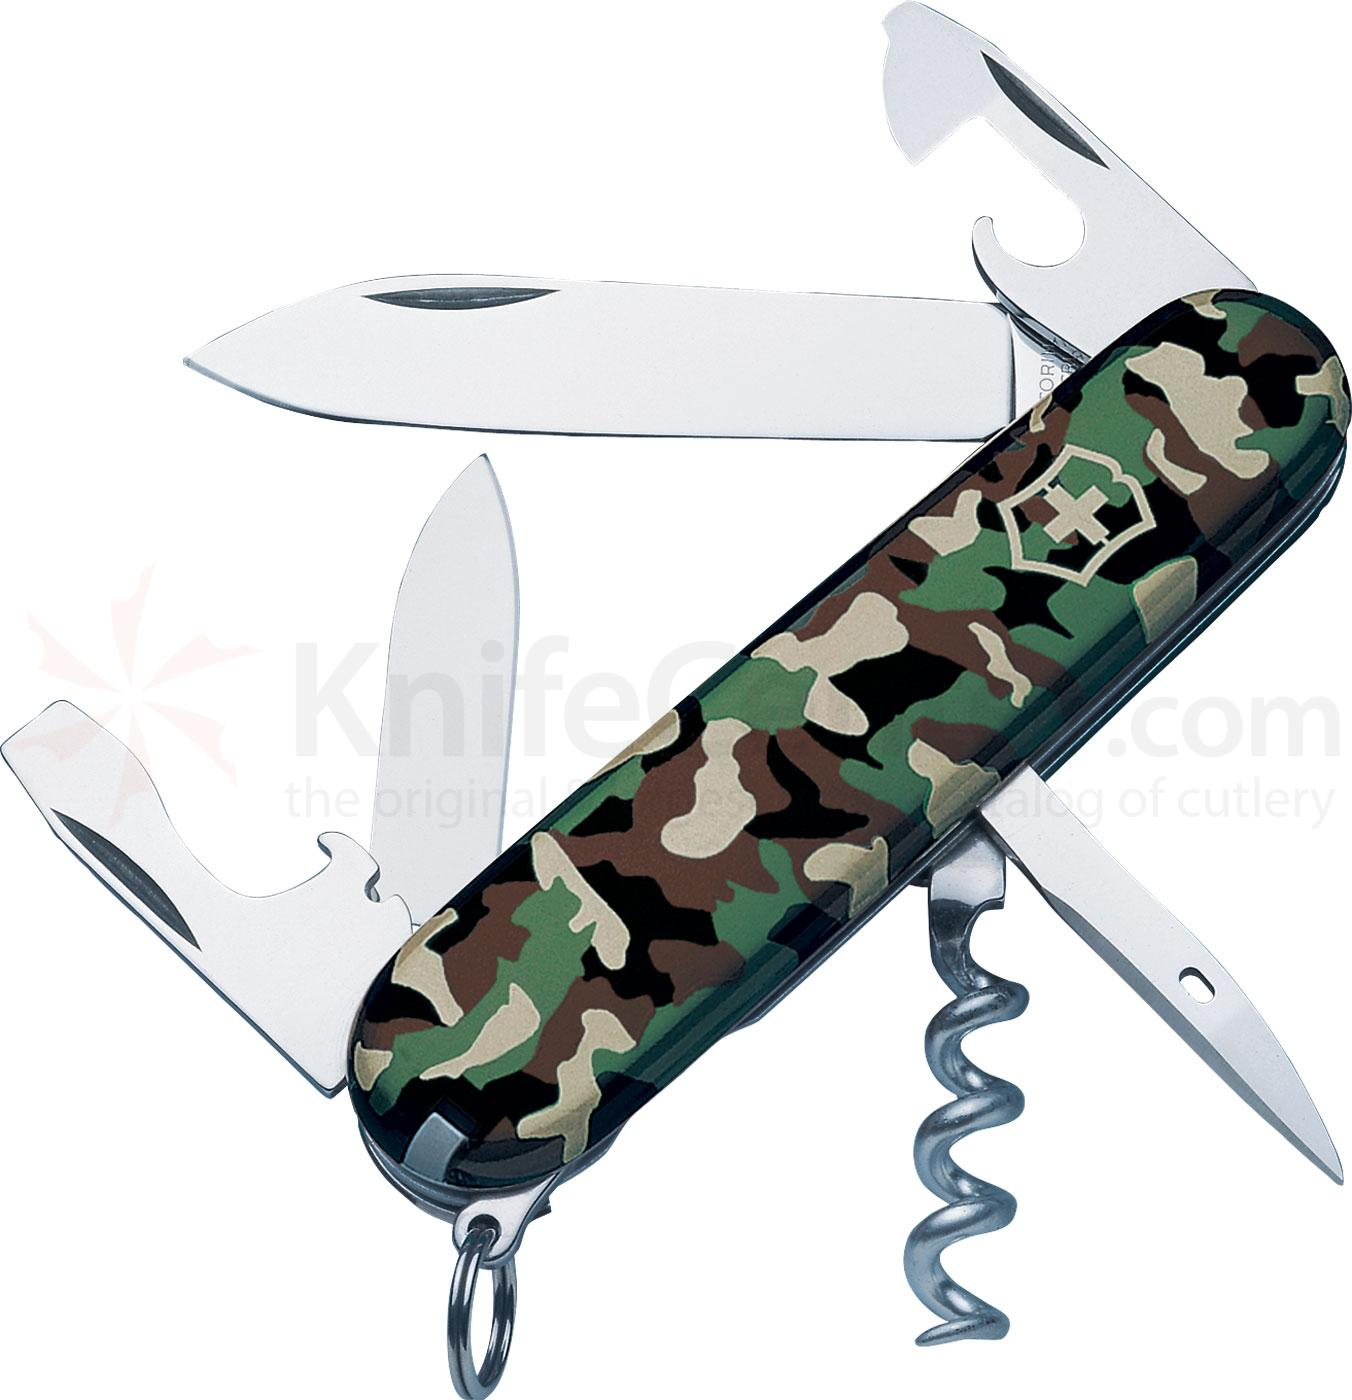 Victorinox Swiss Army Spartan Multi-Tool, Camouflage, 3.58 inch Closed